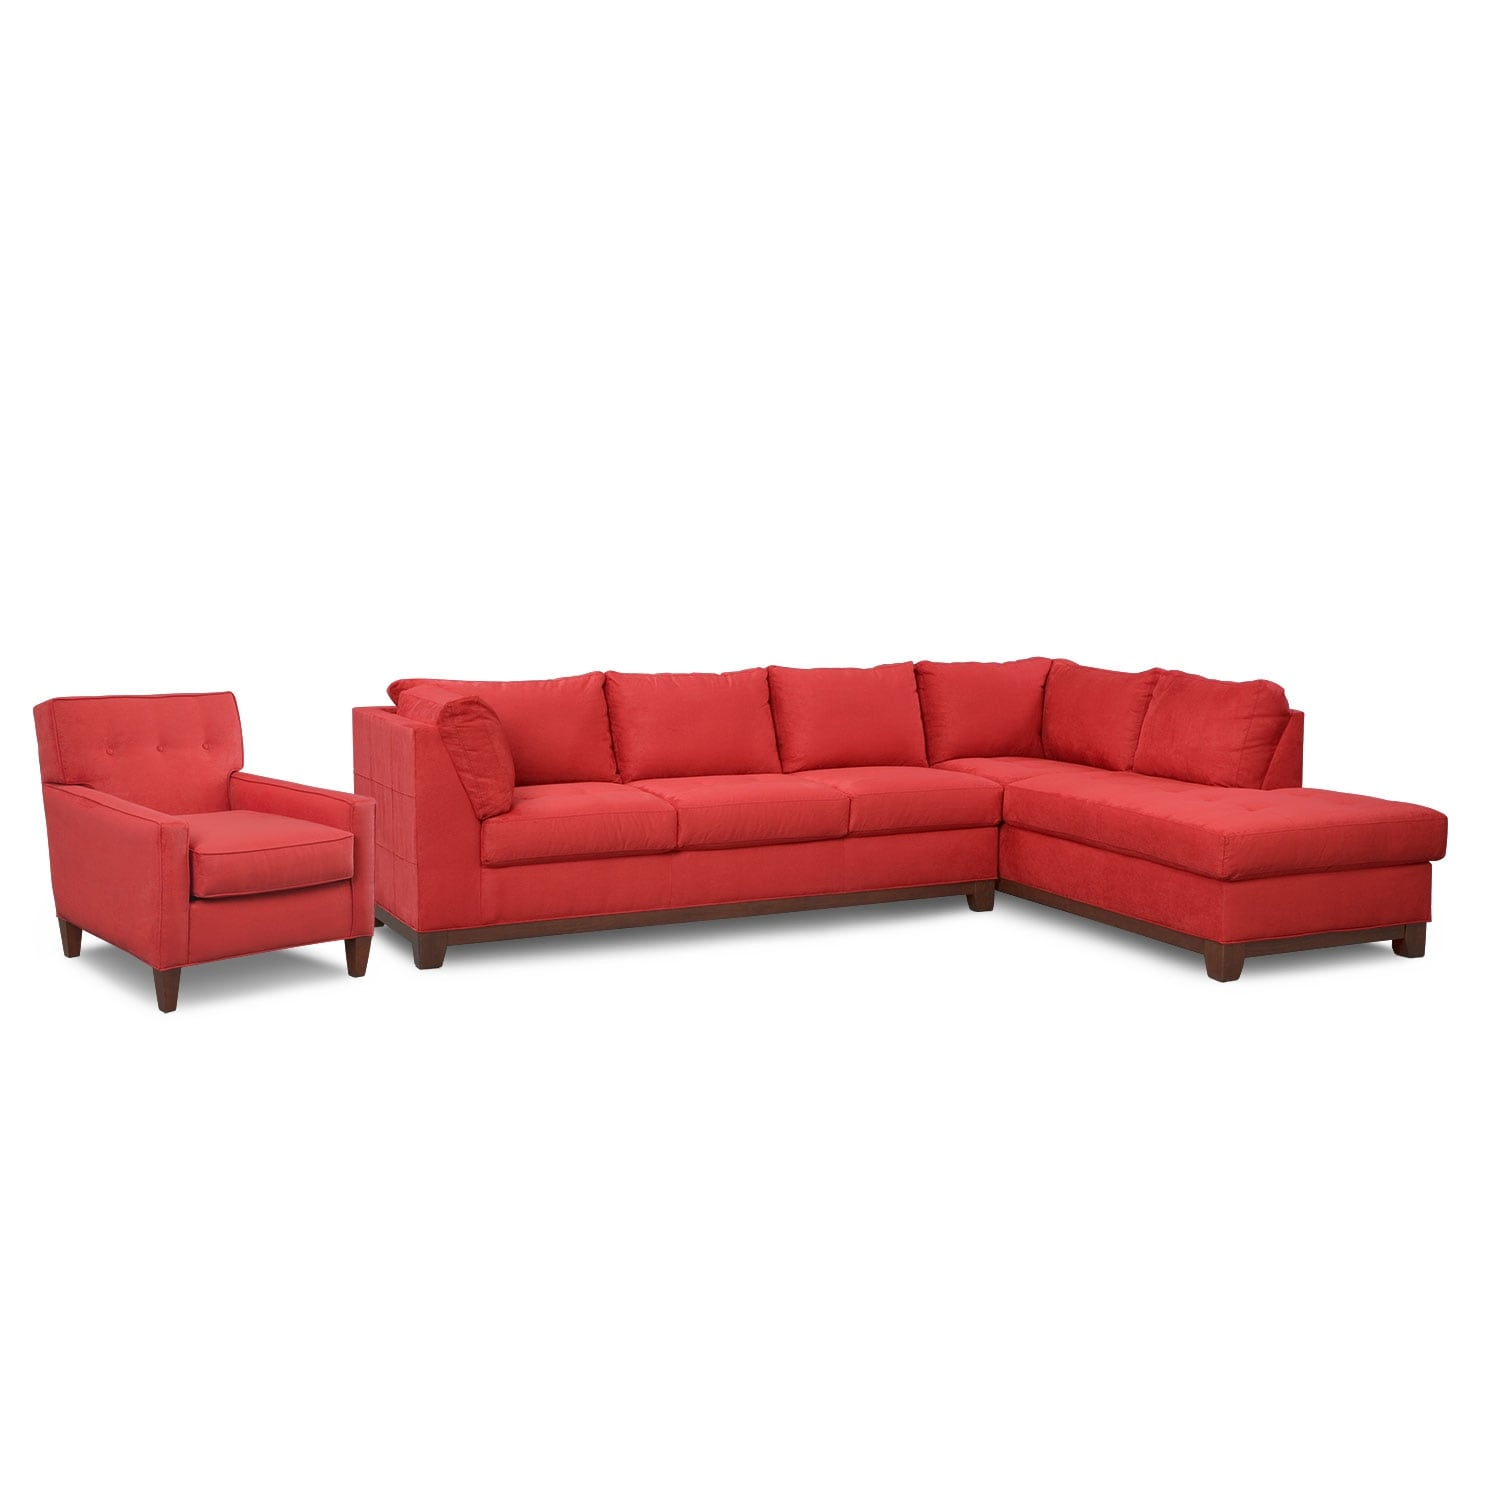 Soho 2-Piece Sectional with Right-Facing Chaise and Chair - Red